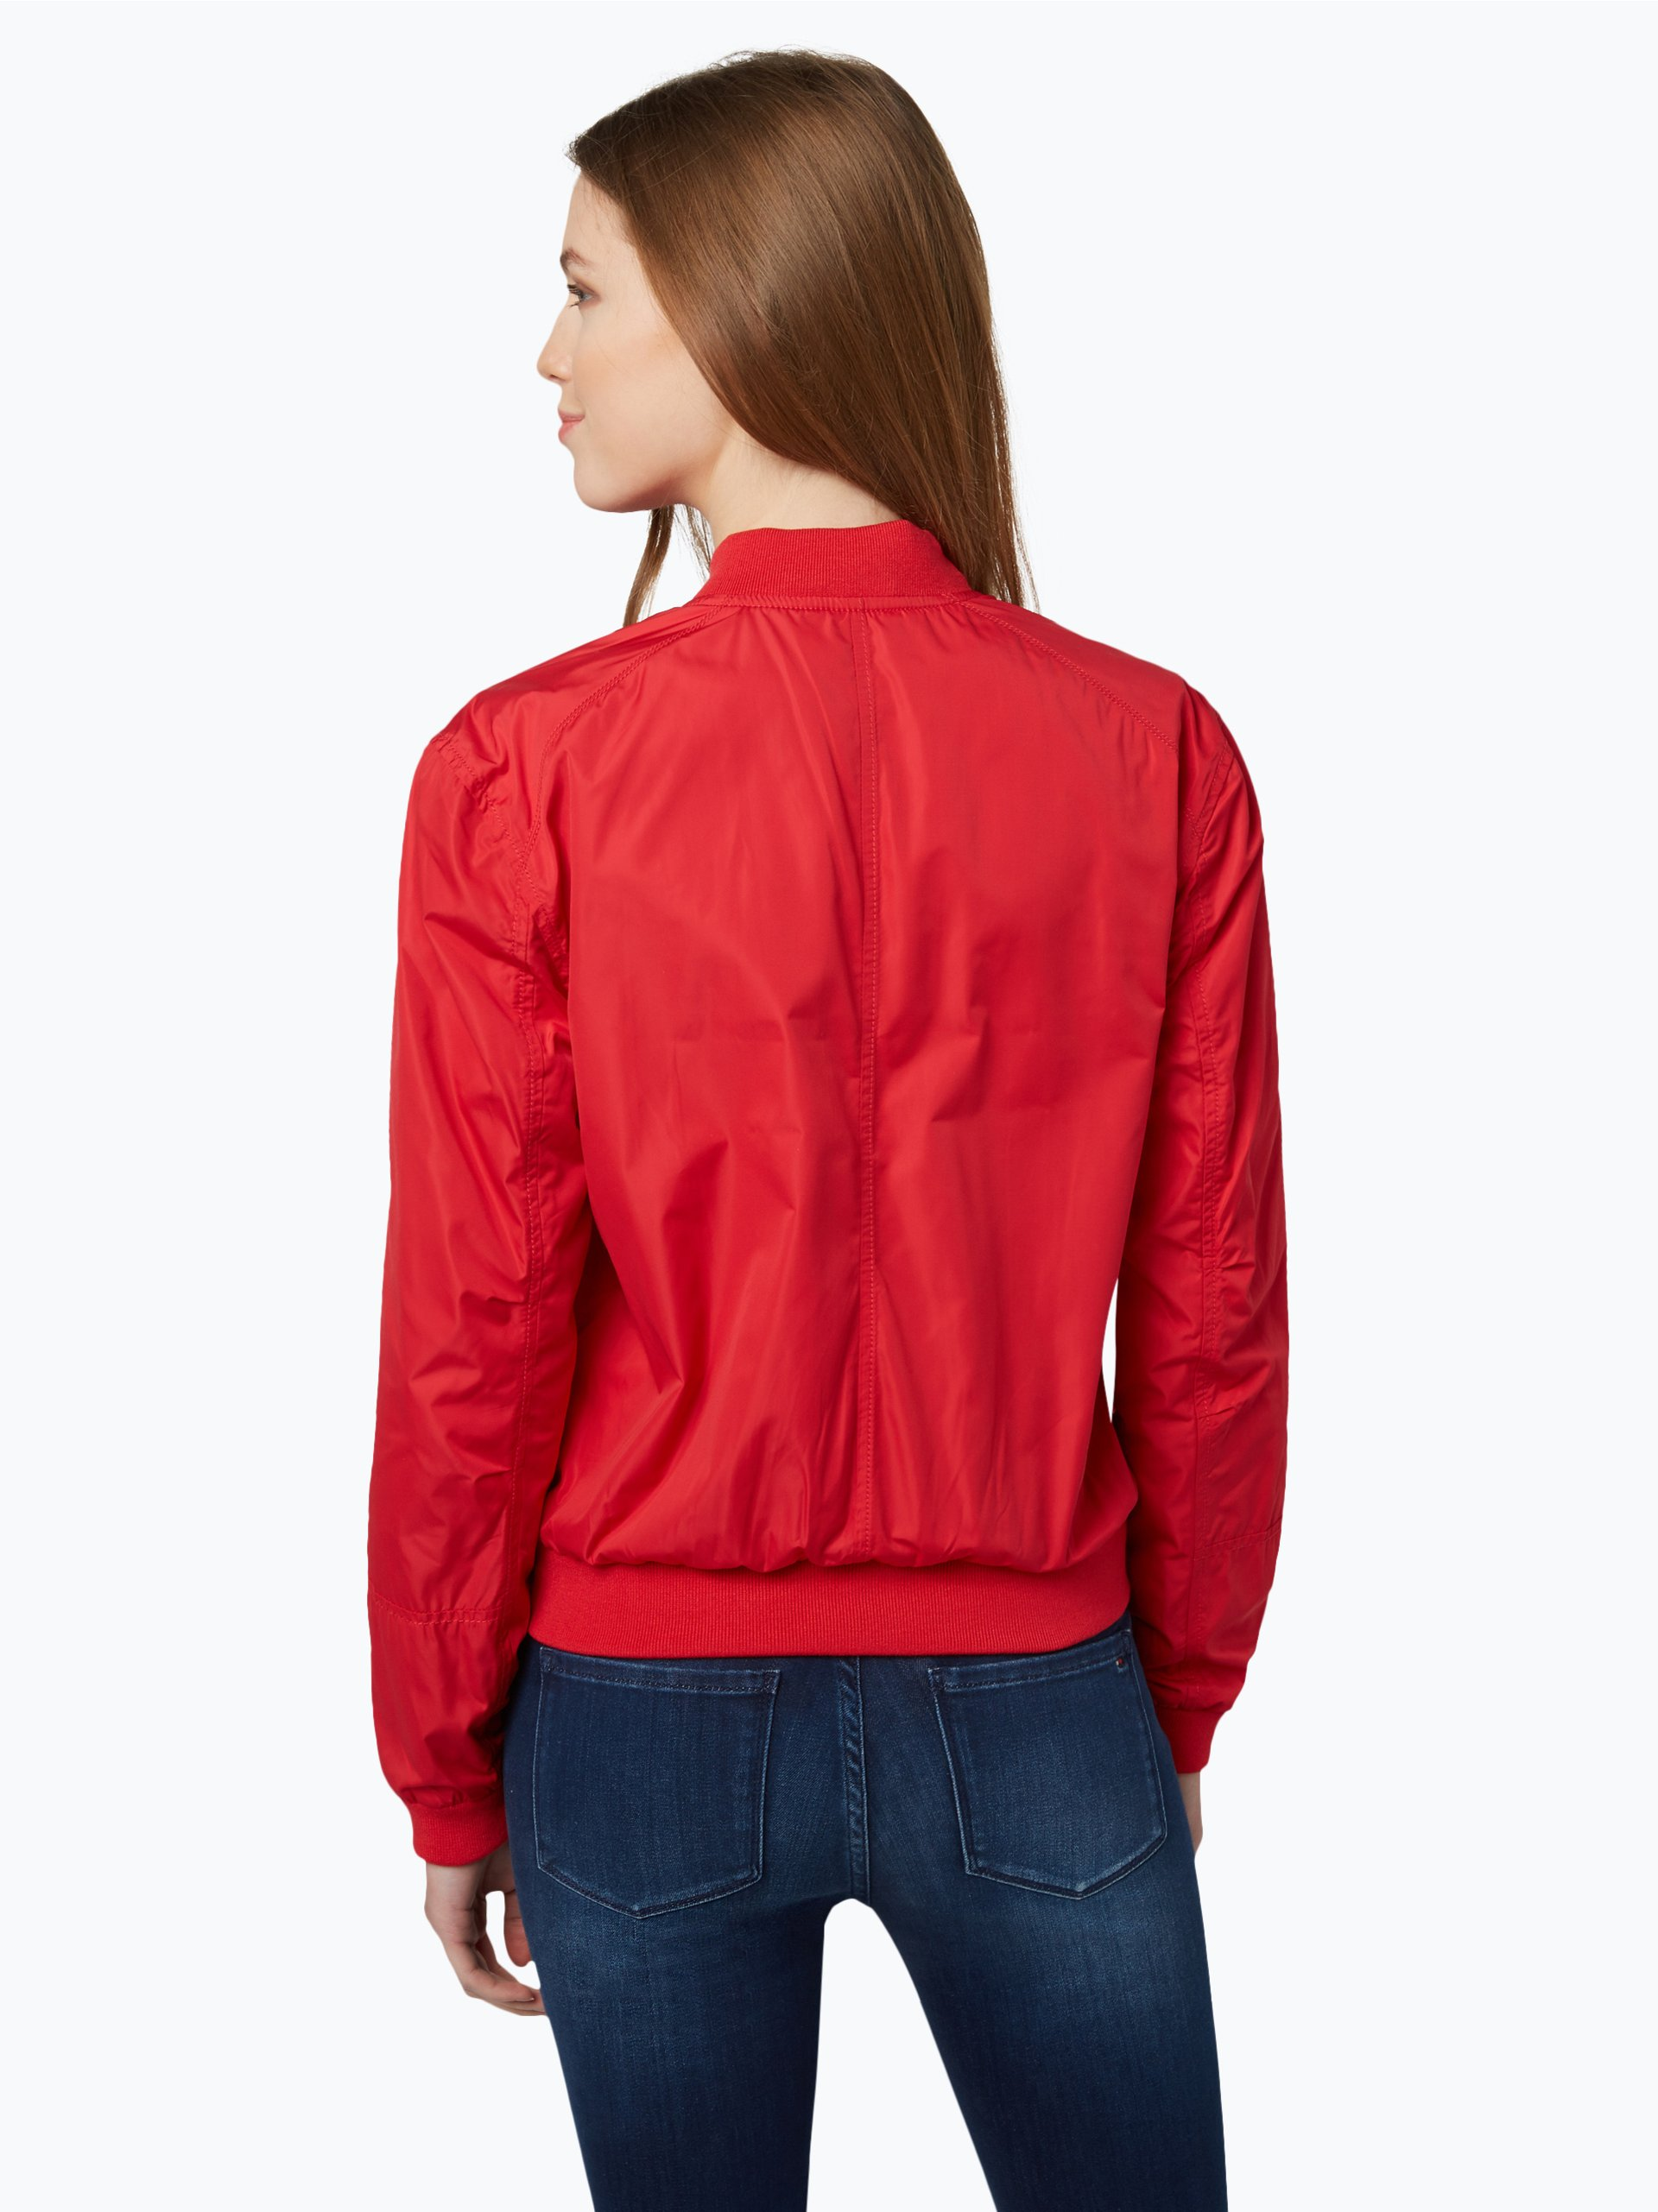 tommy jeans damen jacke rot uni online kaufen peek und. Black Bedroom Furniture Sets. Home Design Ideas